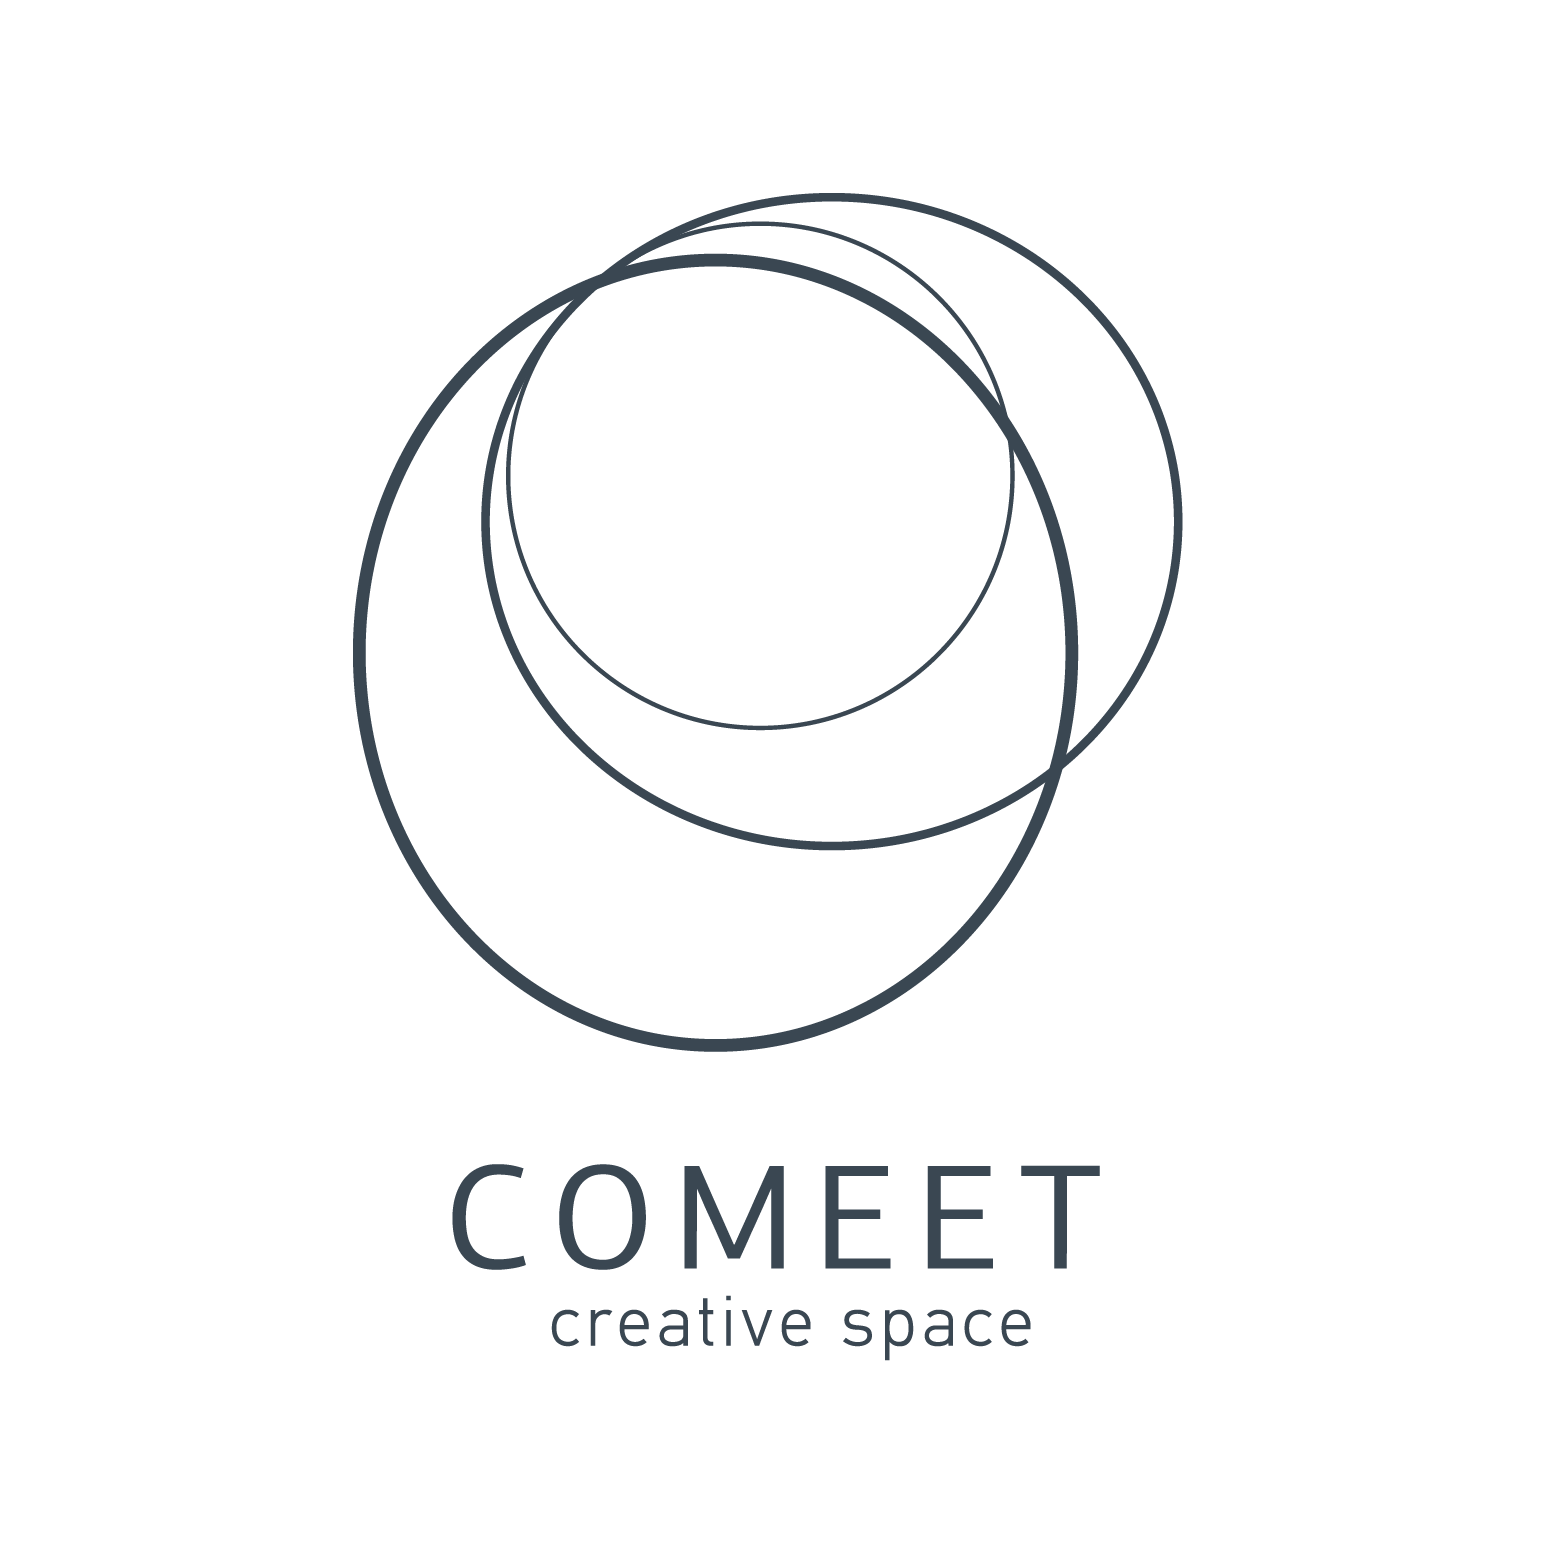 Comeet, Creative Space